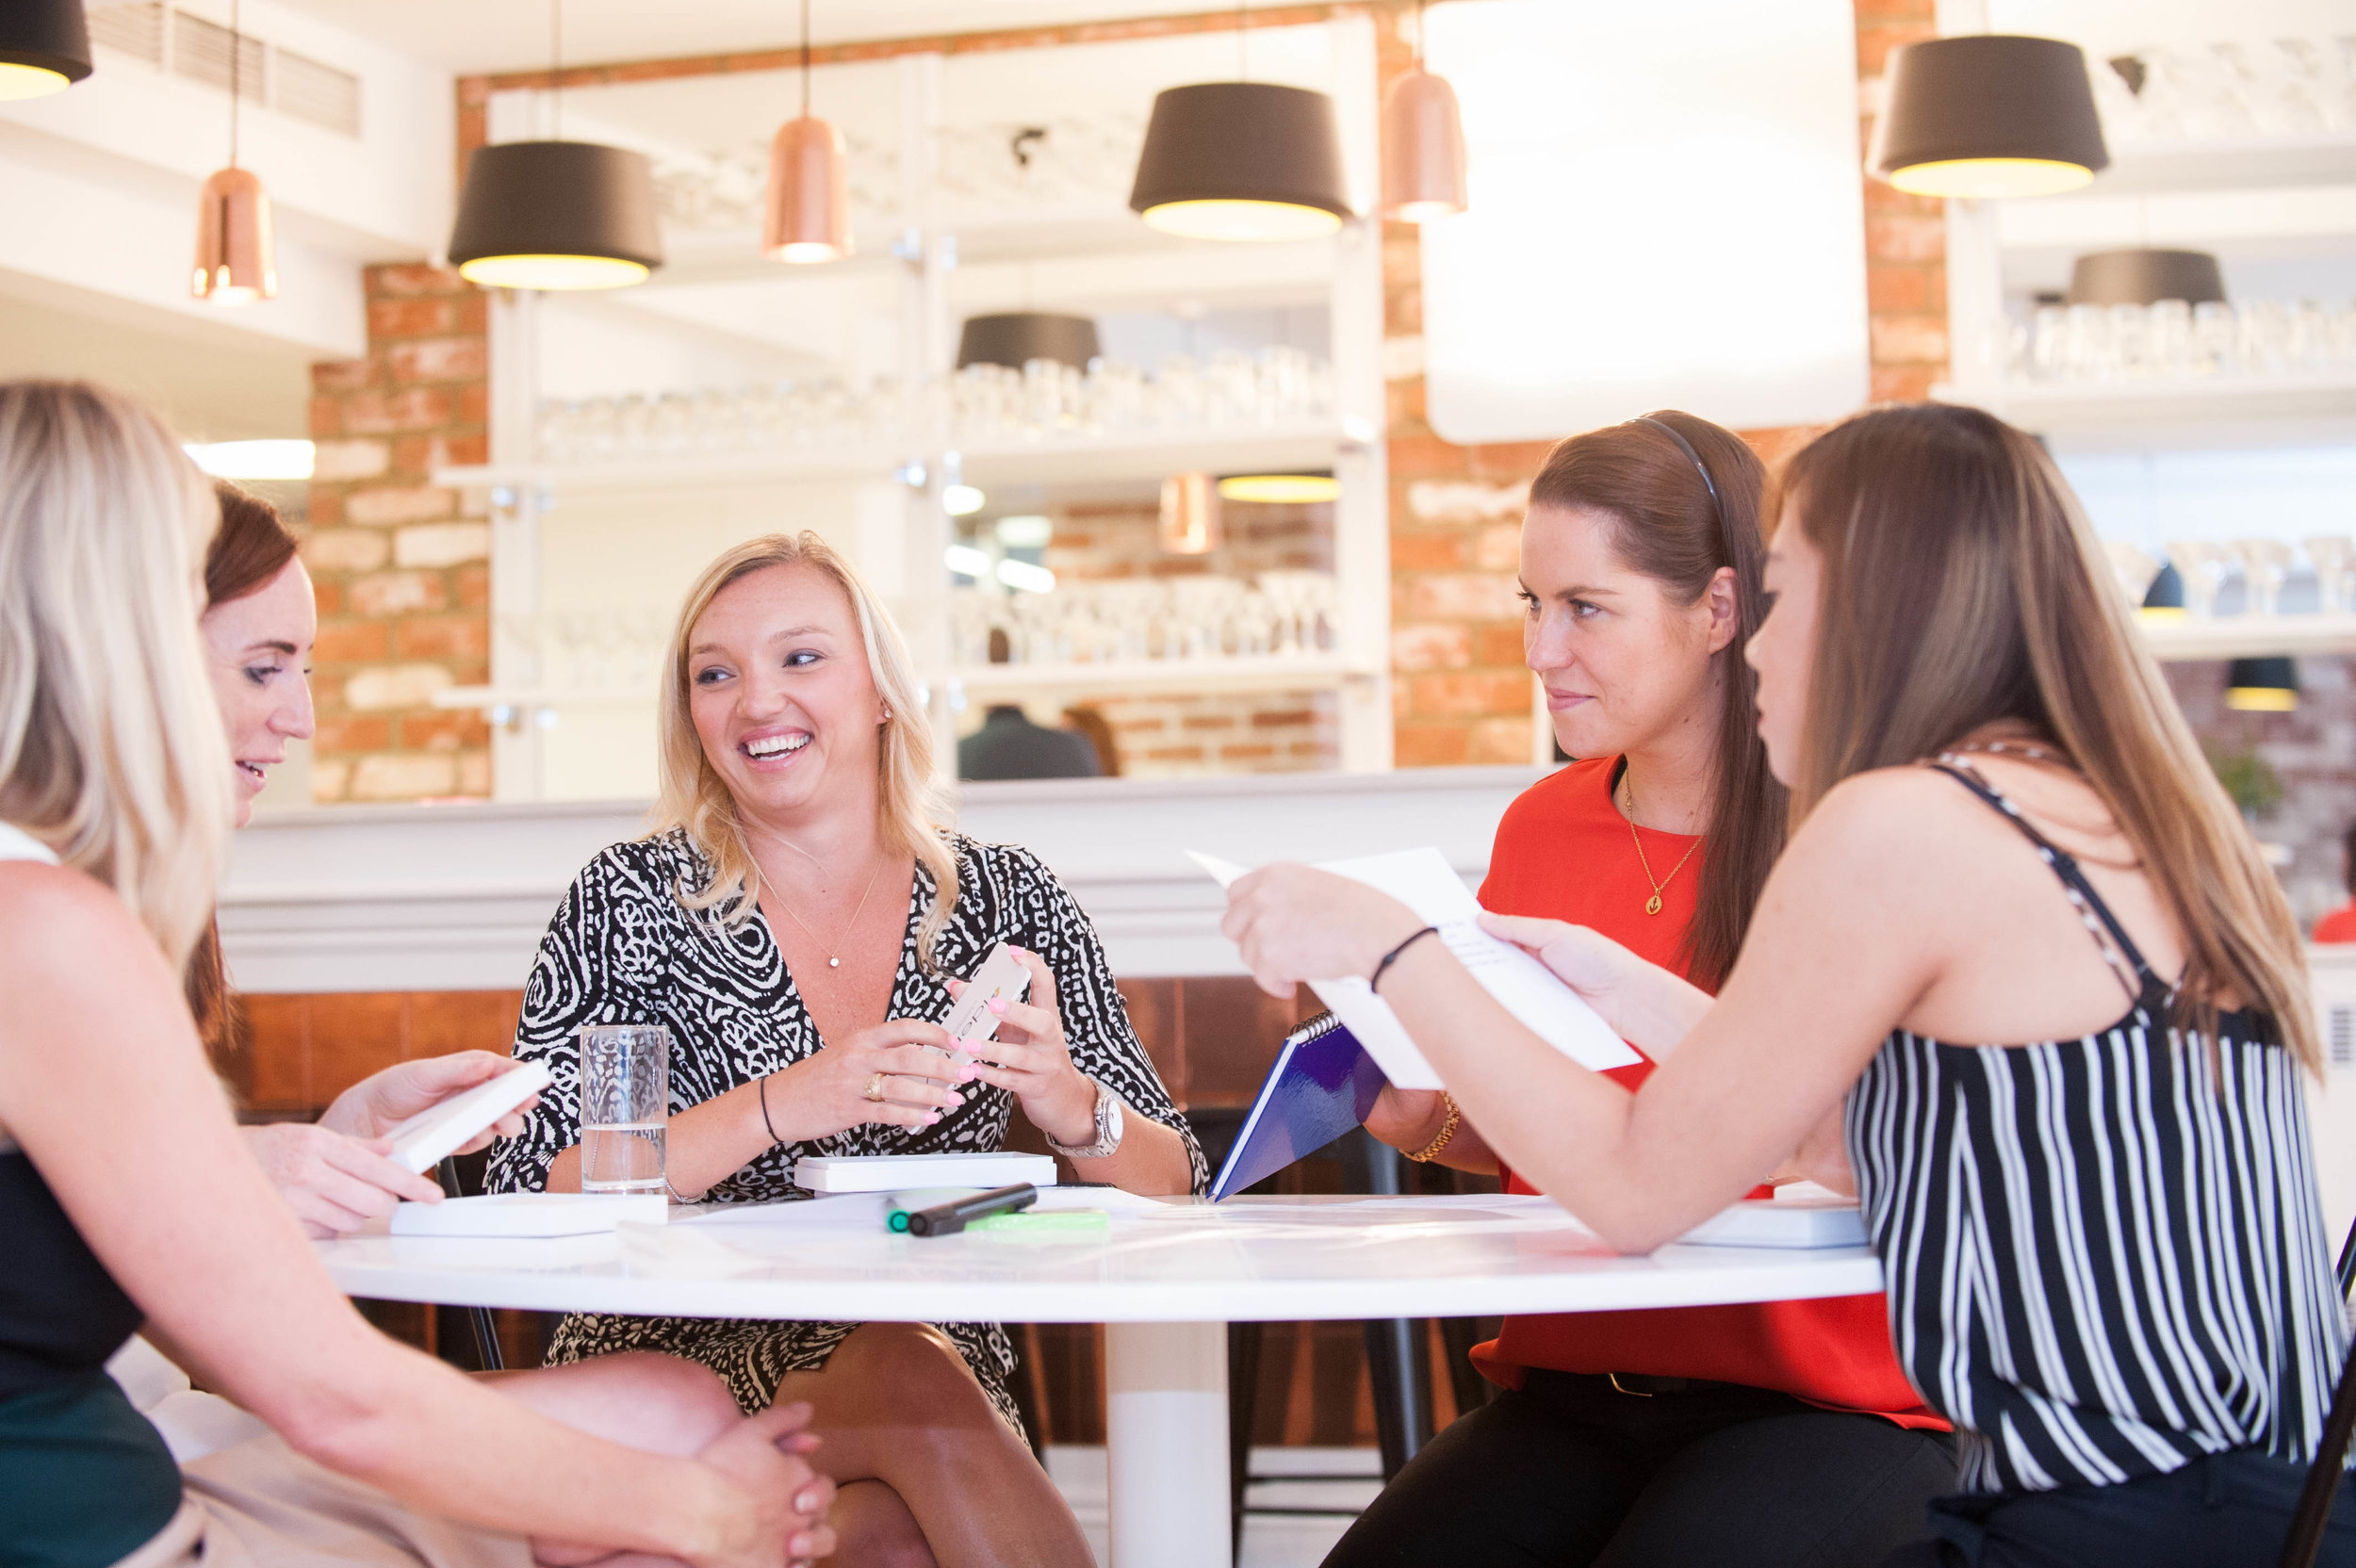 Women laughing round a table during an event workshop session